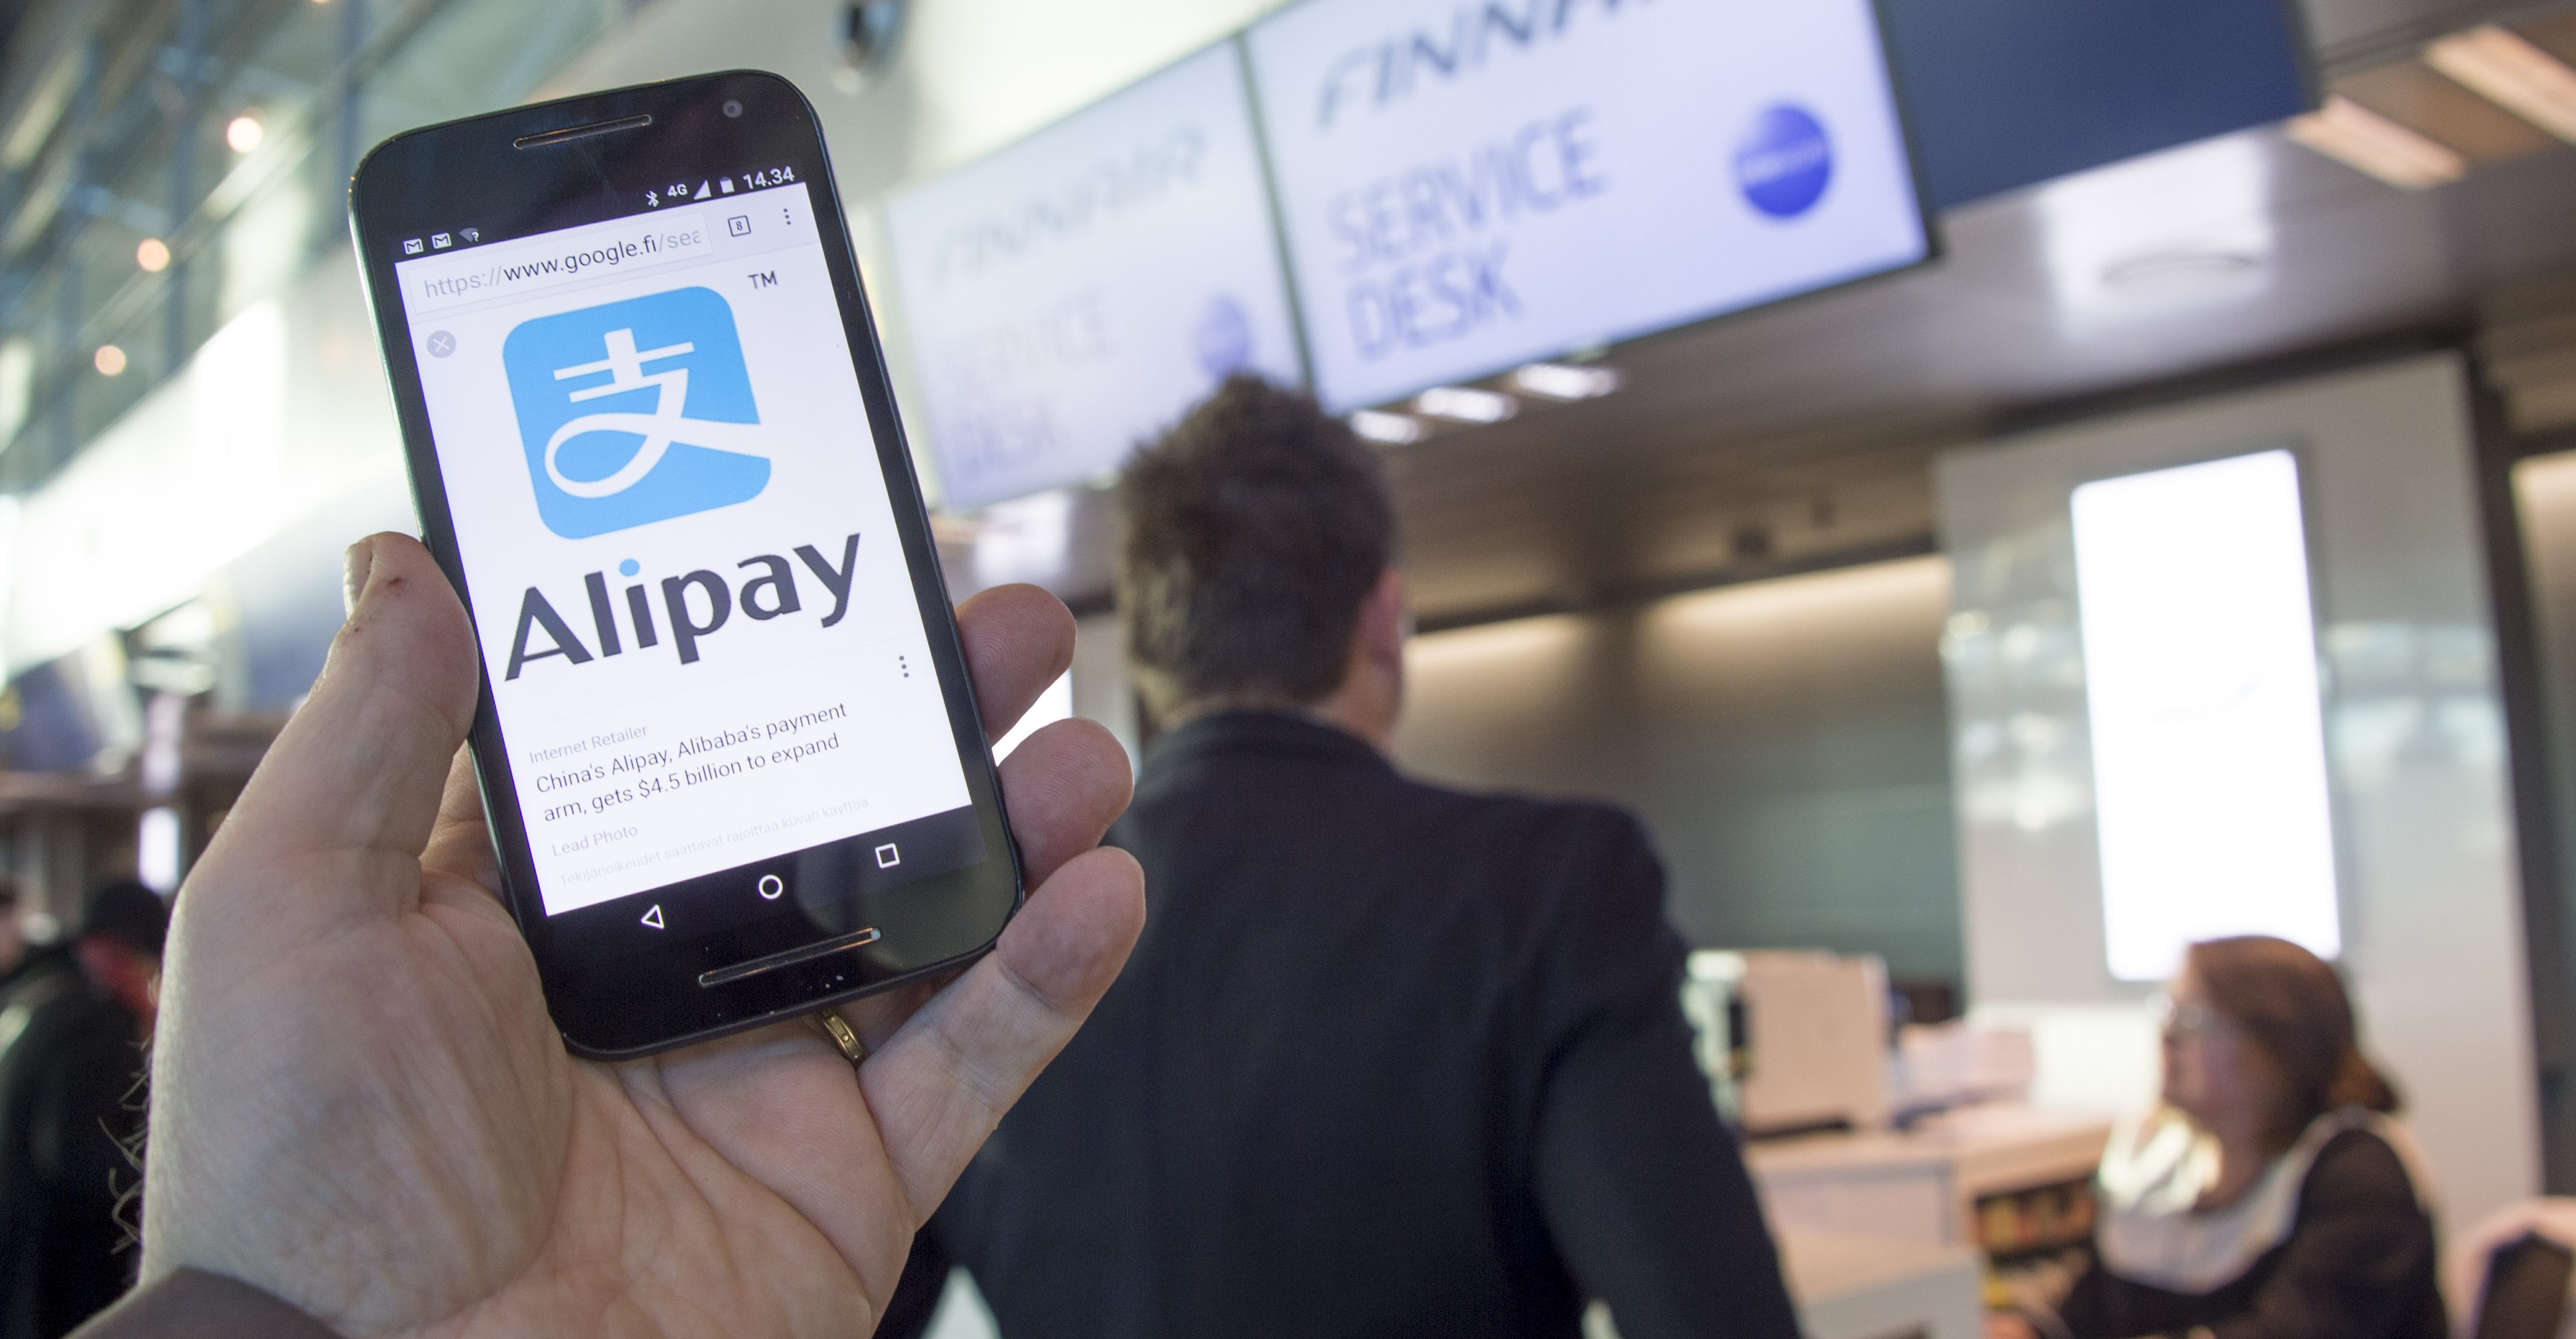 dating apps in china for foreigners use alipay: